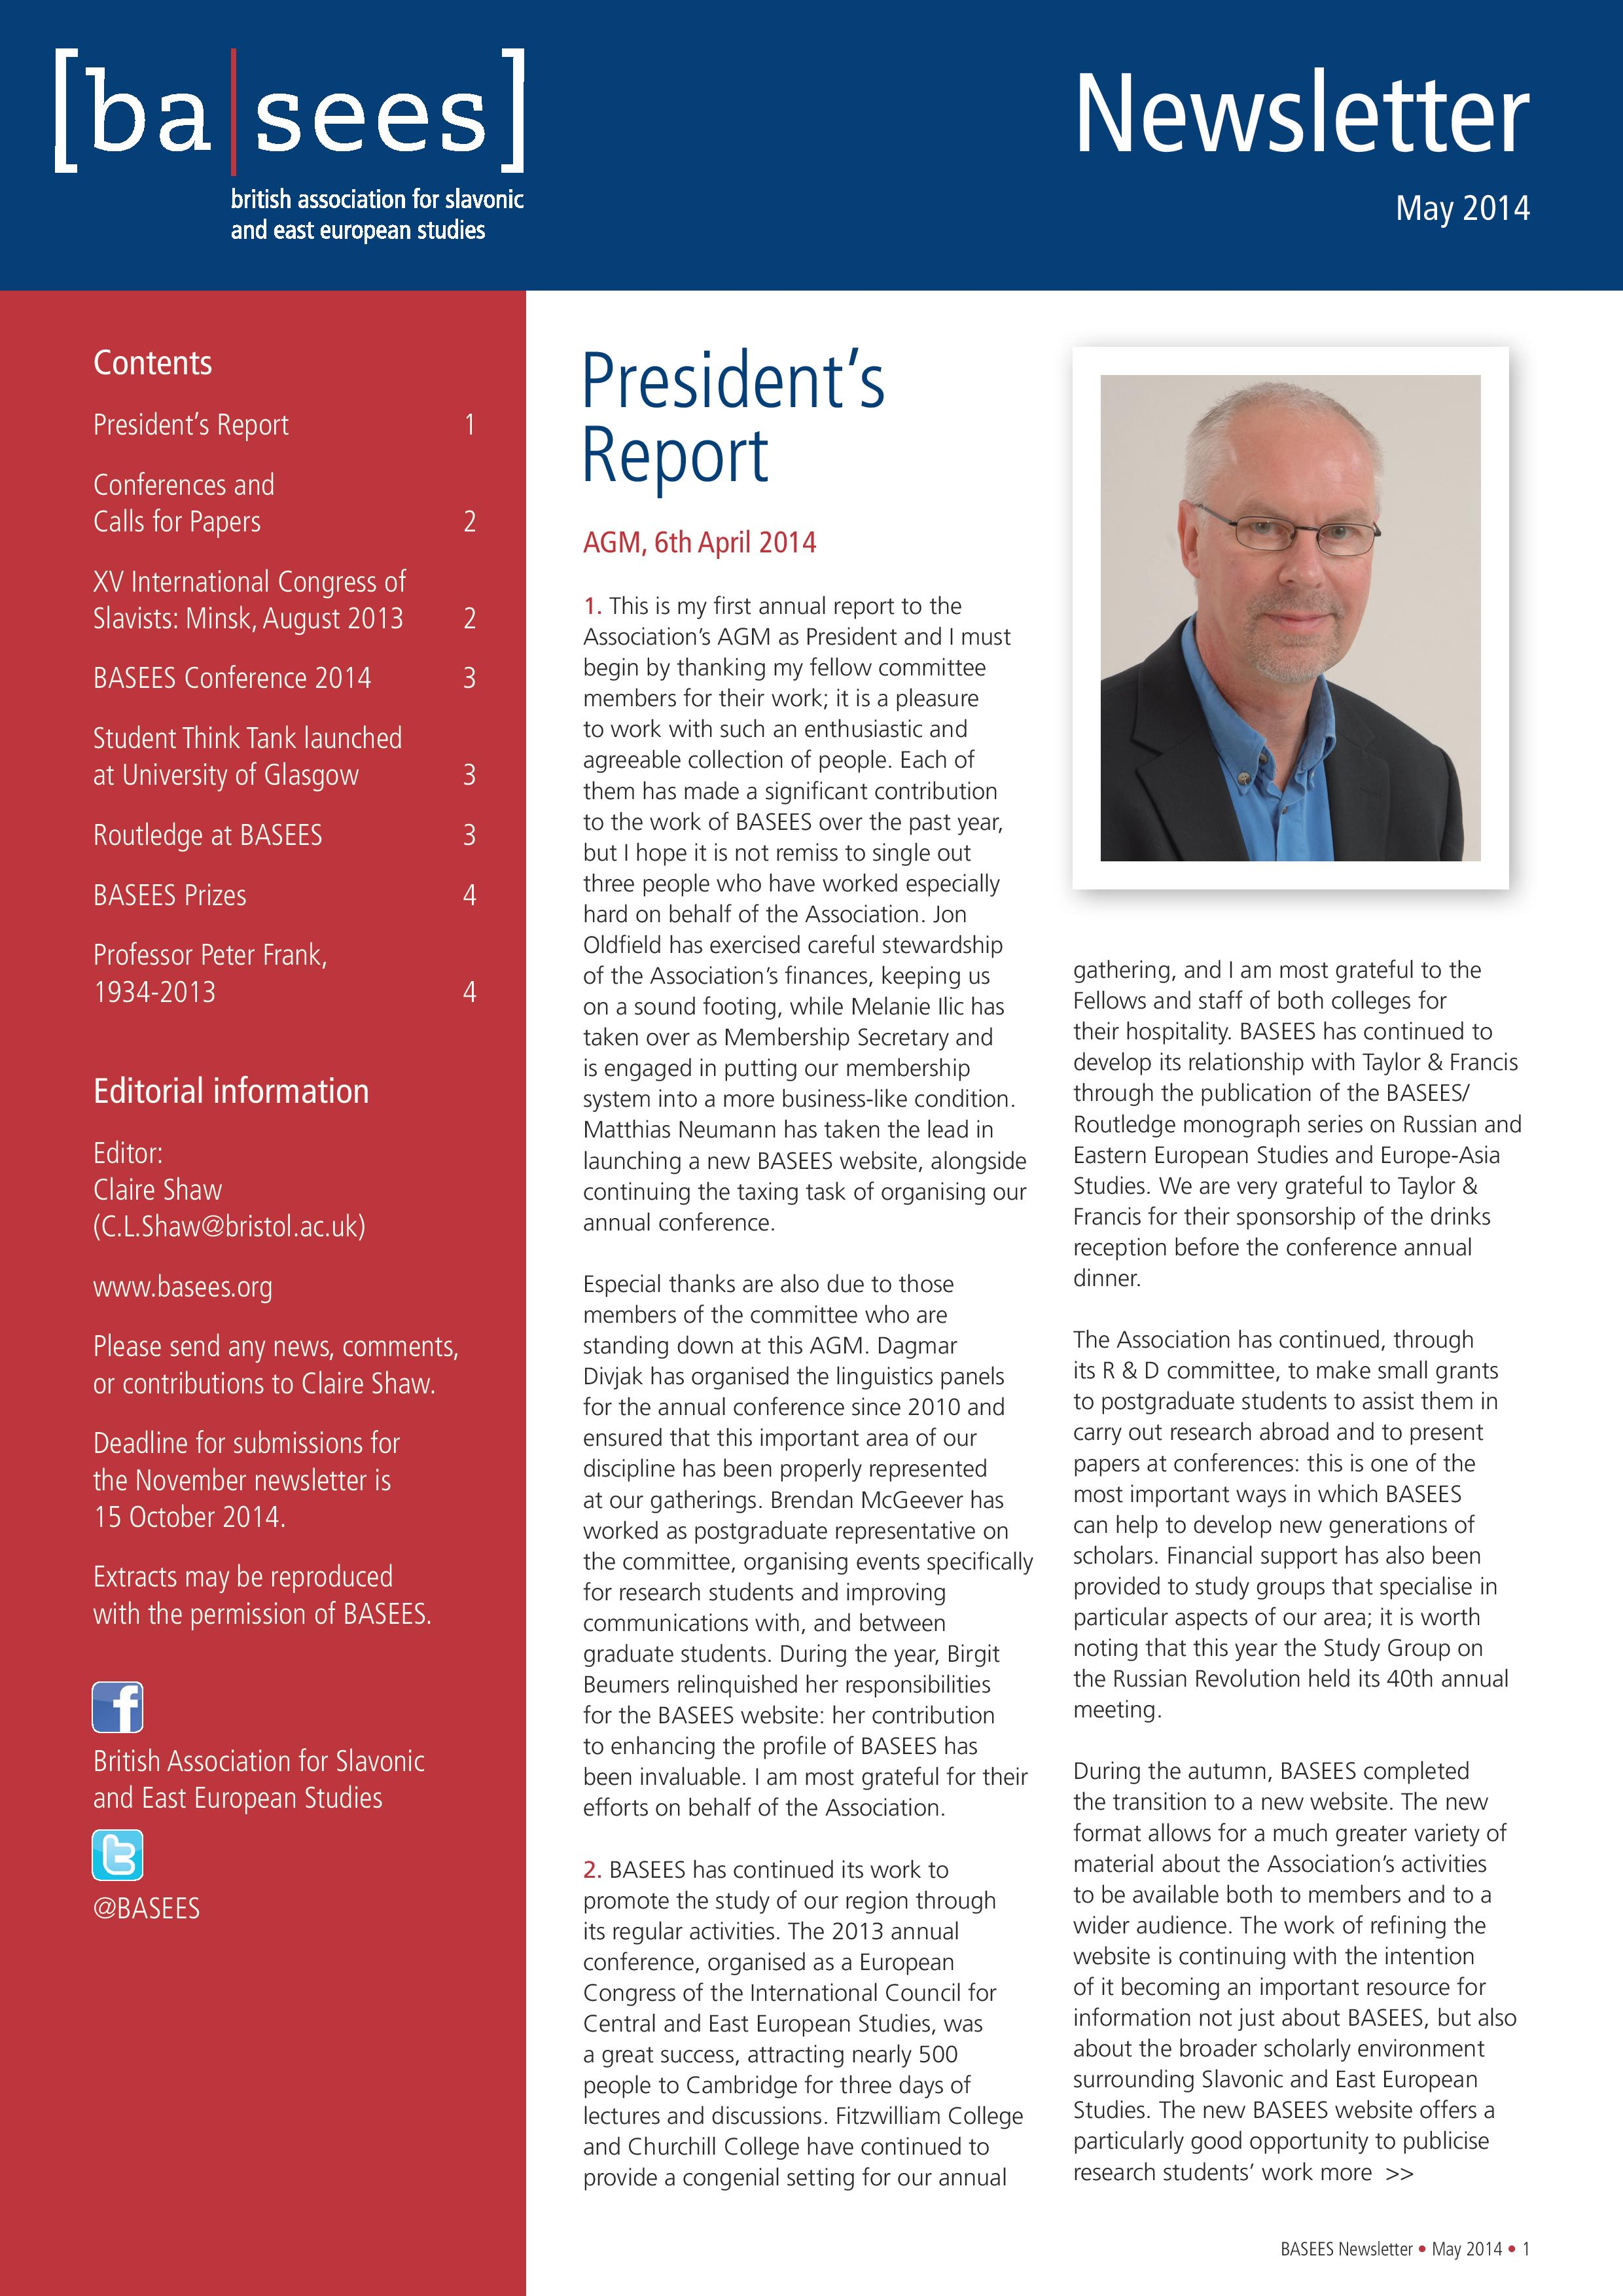 BASEES NewsletterMay 2014-page-001.jpg